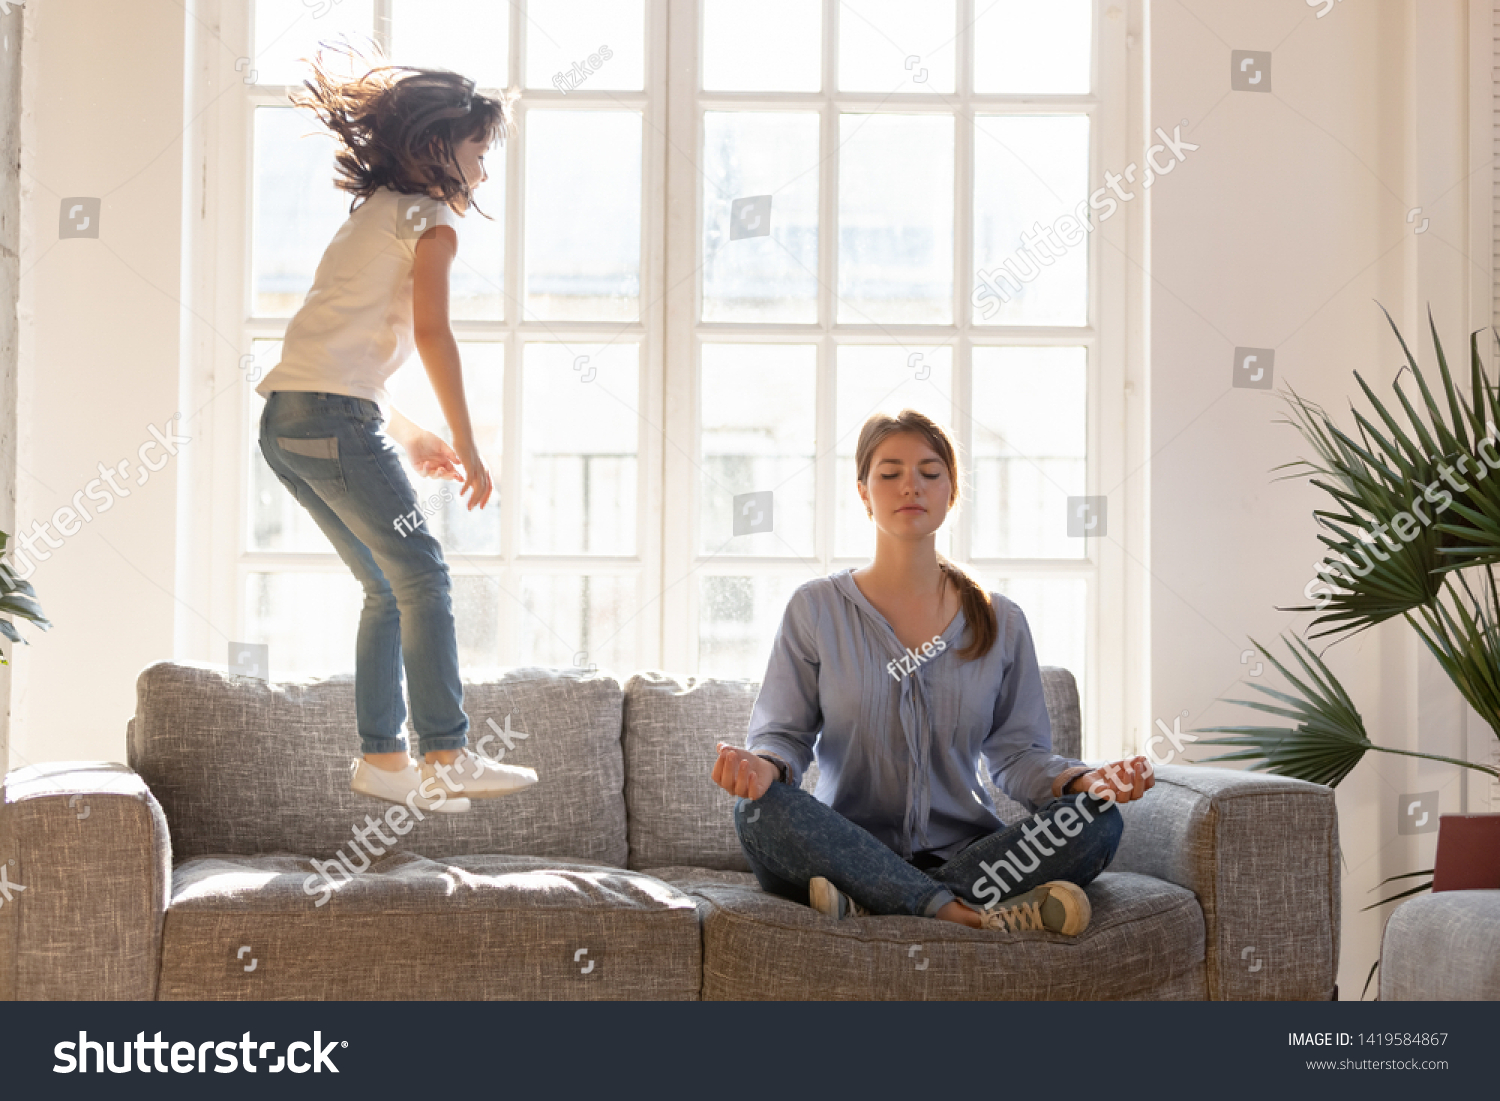 Young mom sit on couch at home meditating in lotus position, small daughter have fun jumping near, concentrated calm mother practice yoga relax on sofa ignore playful kid. Stress free concept #1419584867